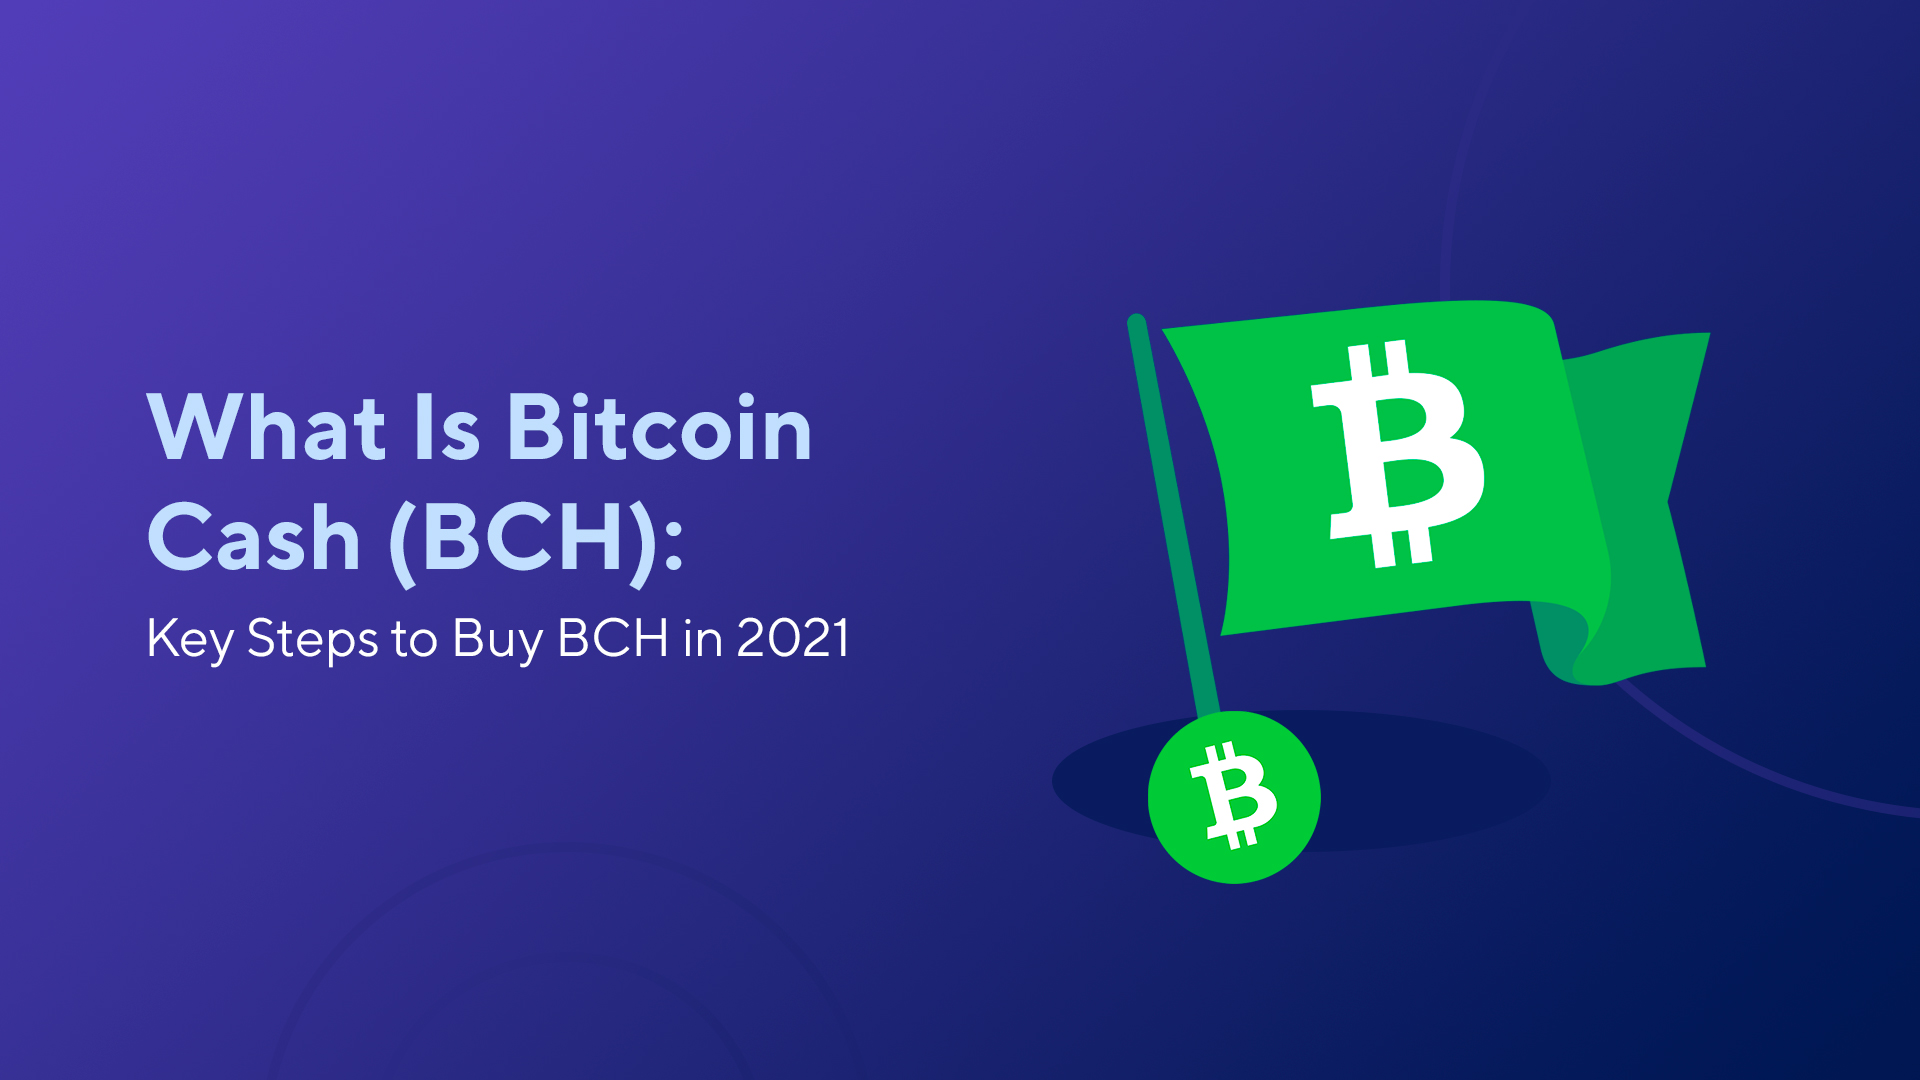 What Is BCH and How to Buy Bitcoin Cash in 2021?